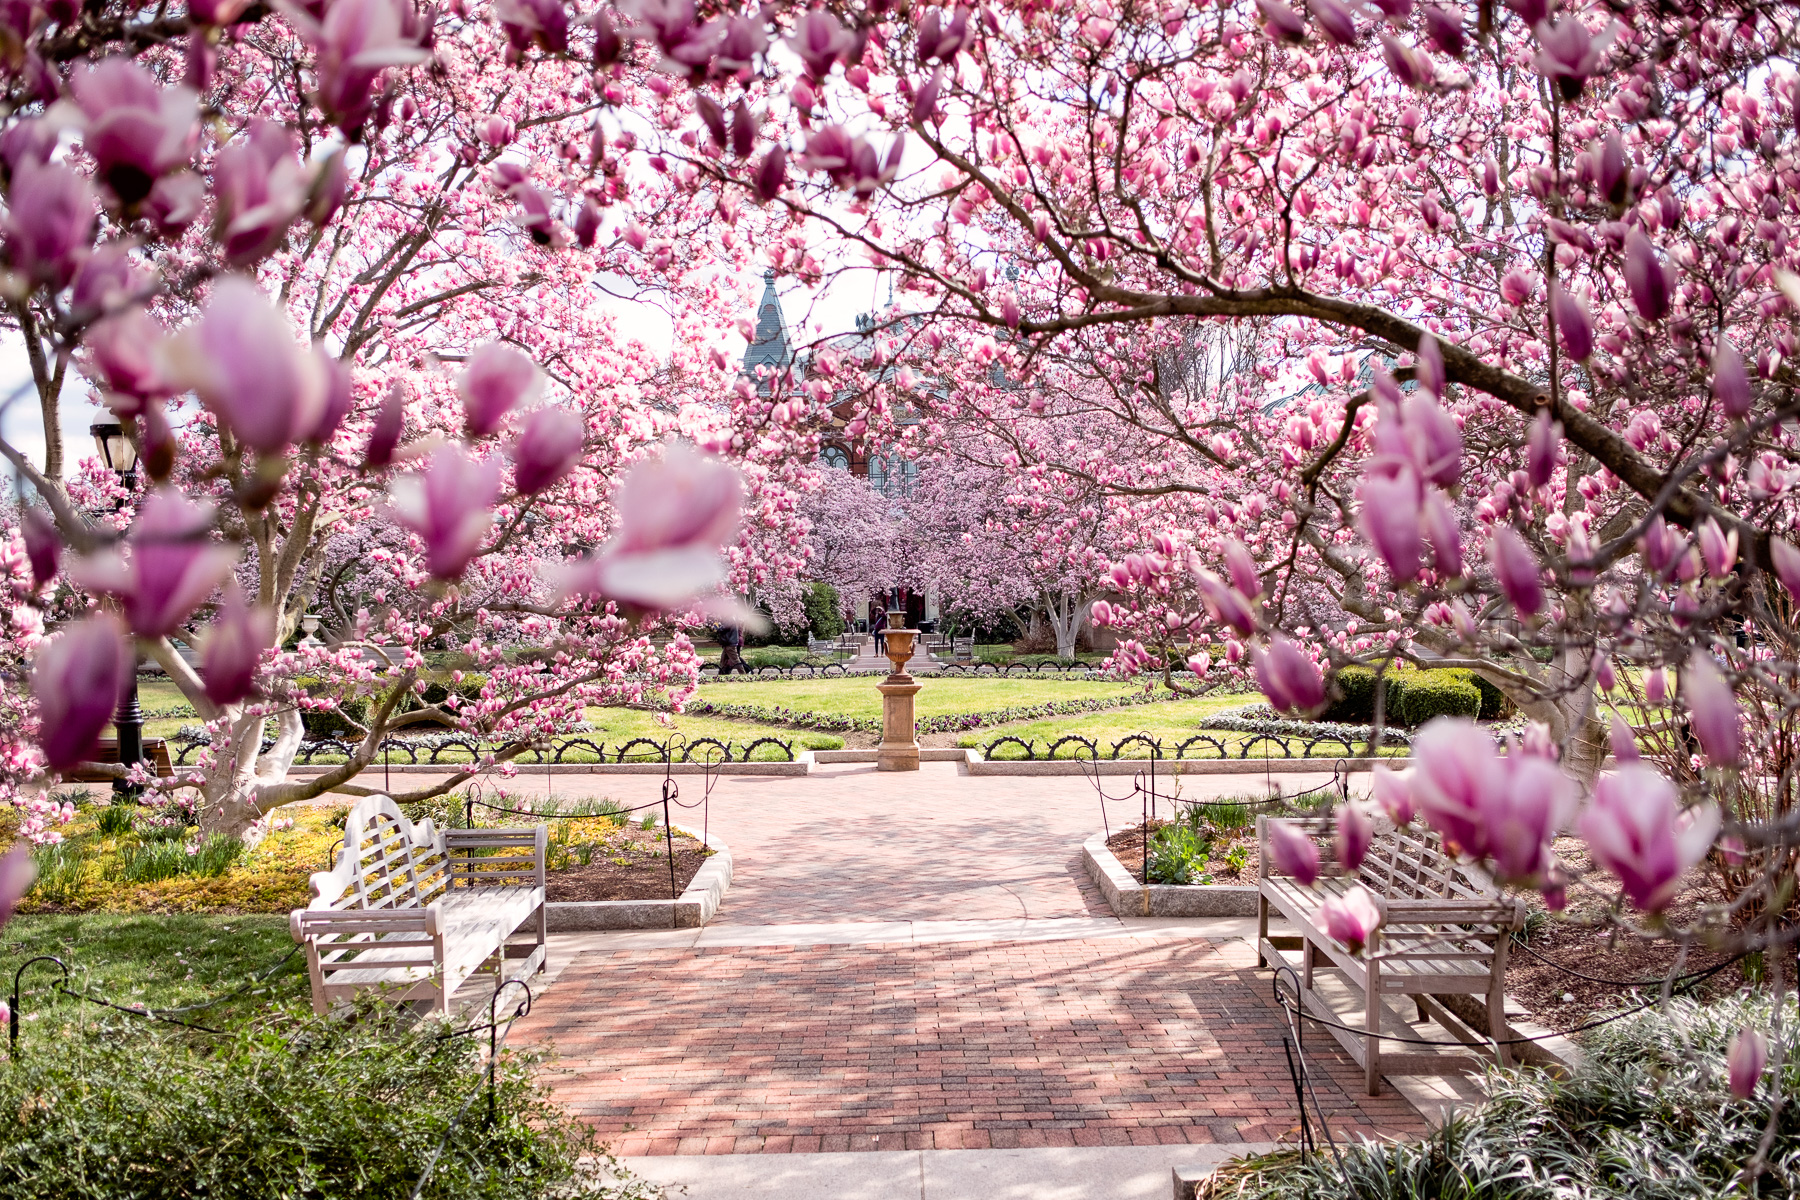 Washington Dc Cherry Blossom Watch 2019